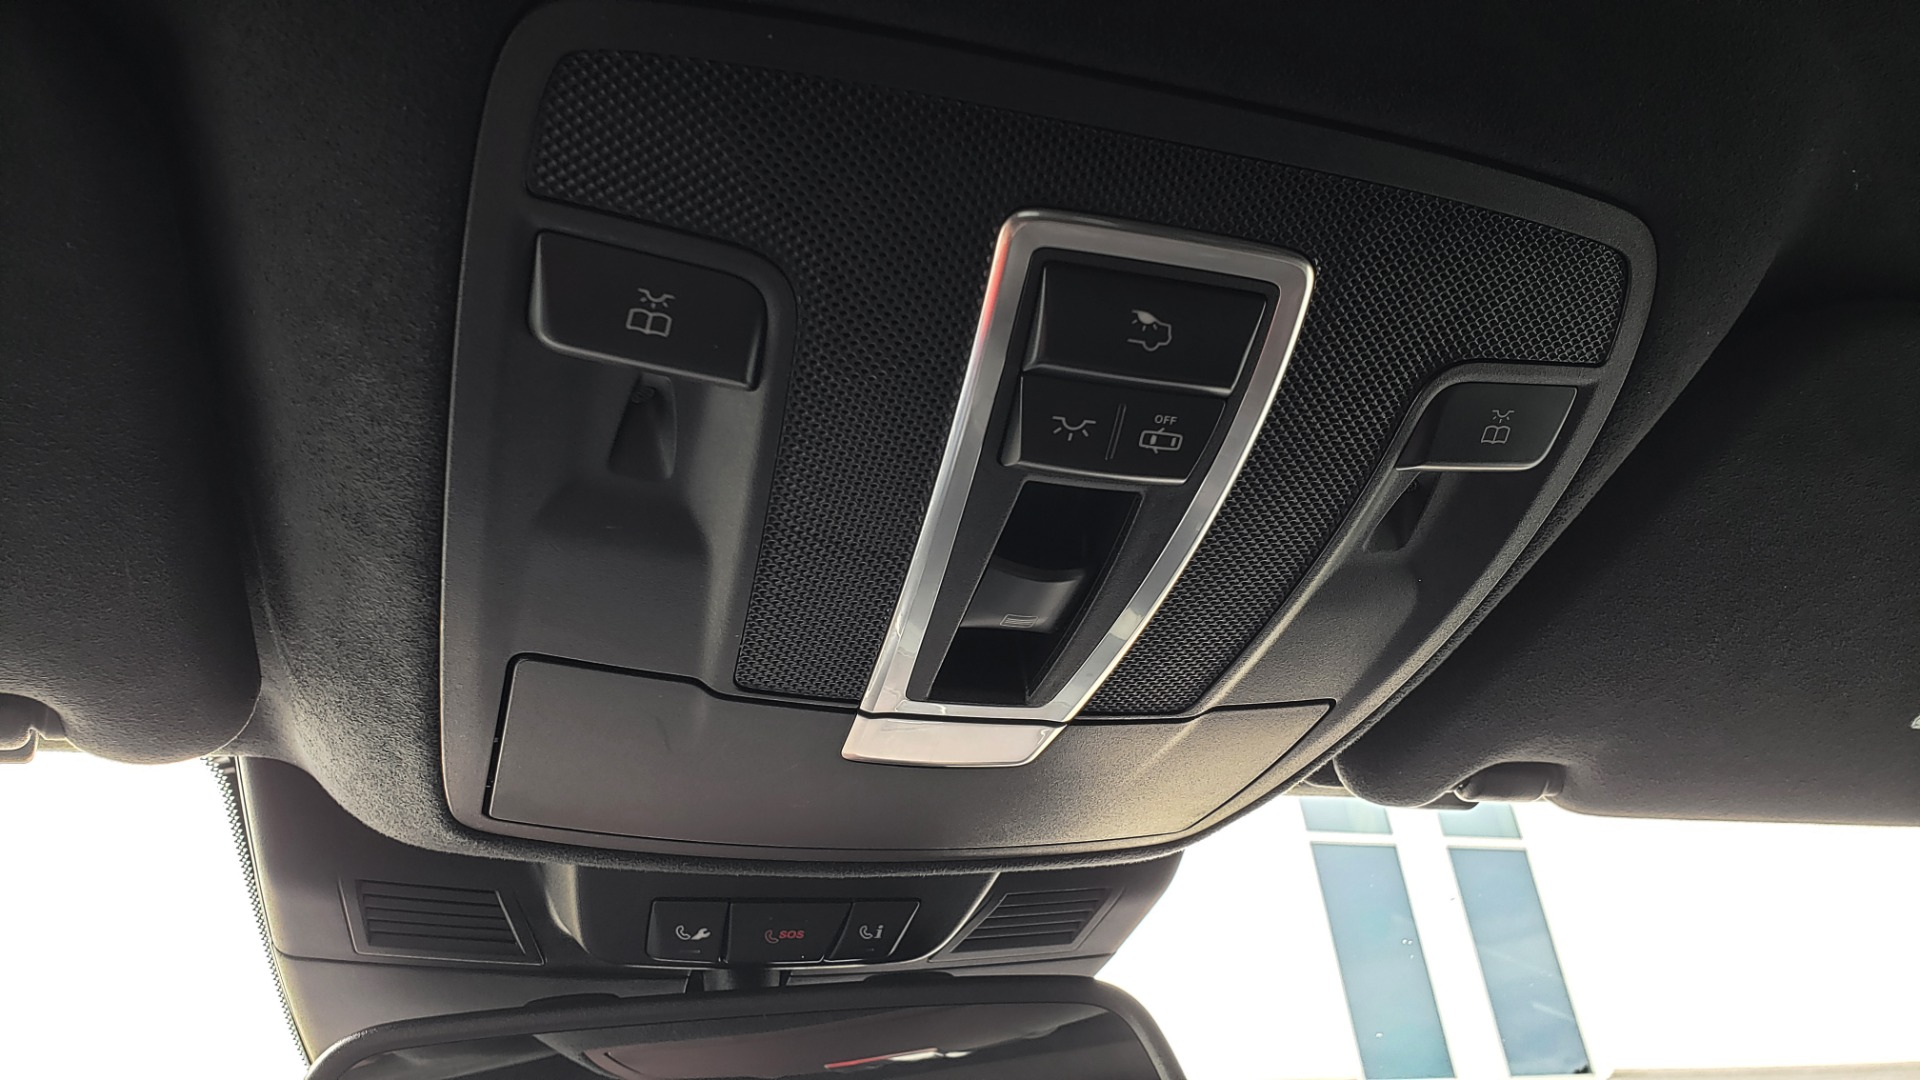 Used 2014 Mercedes-Benz GL-CLASS GL 63 AMG 4MATIC / NIGHT VIEW ASSIST PLUS / BANG & OLUFSEN SND for sale Sold at Formula Imports in Charlotte NC 28227 63